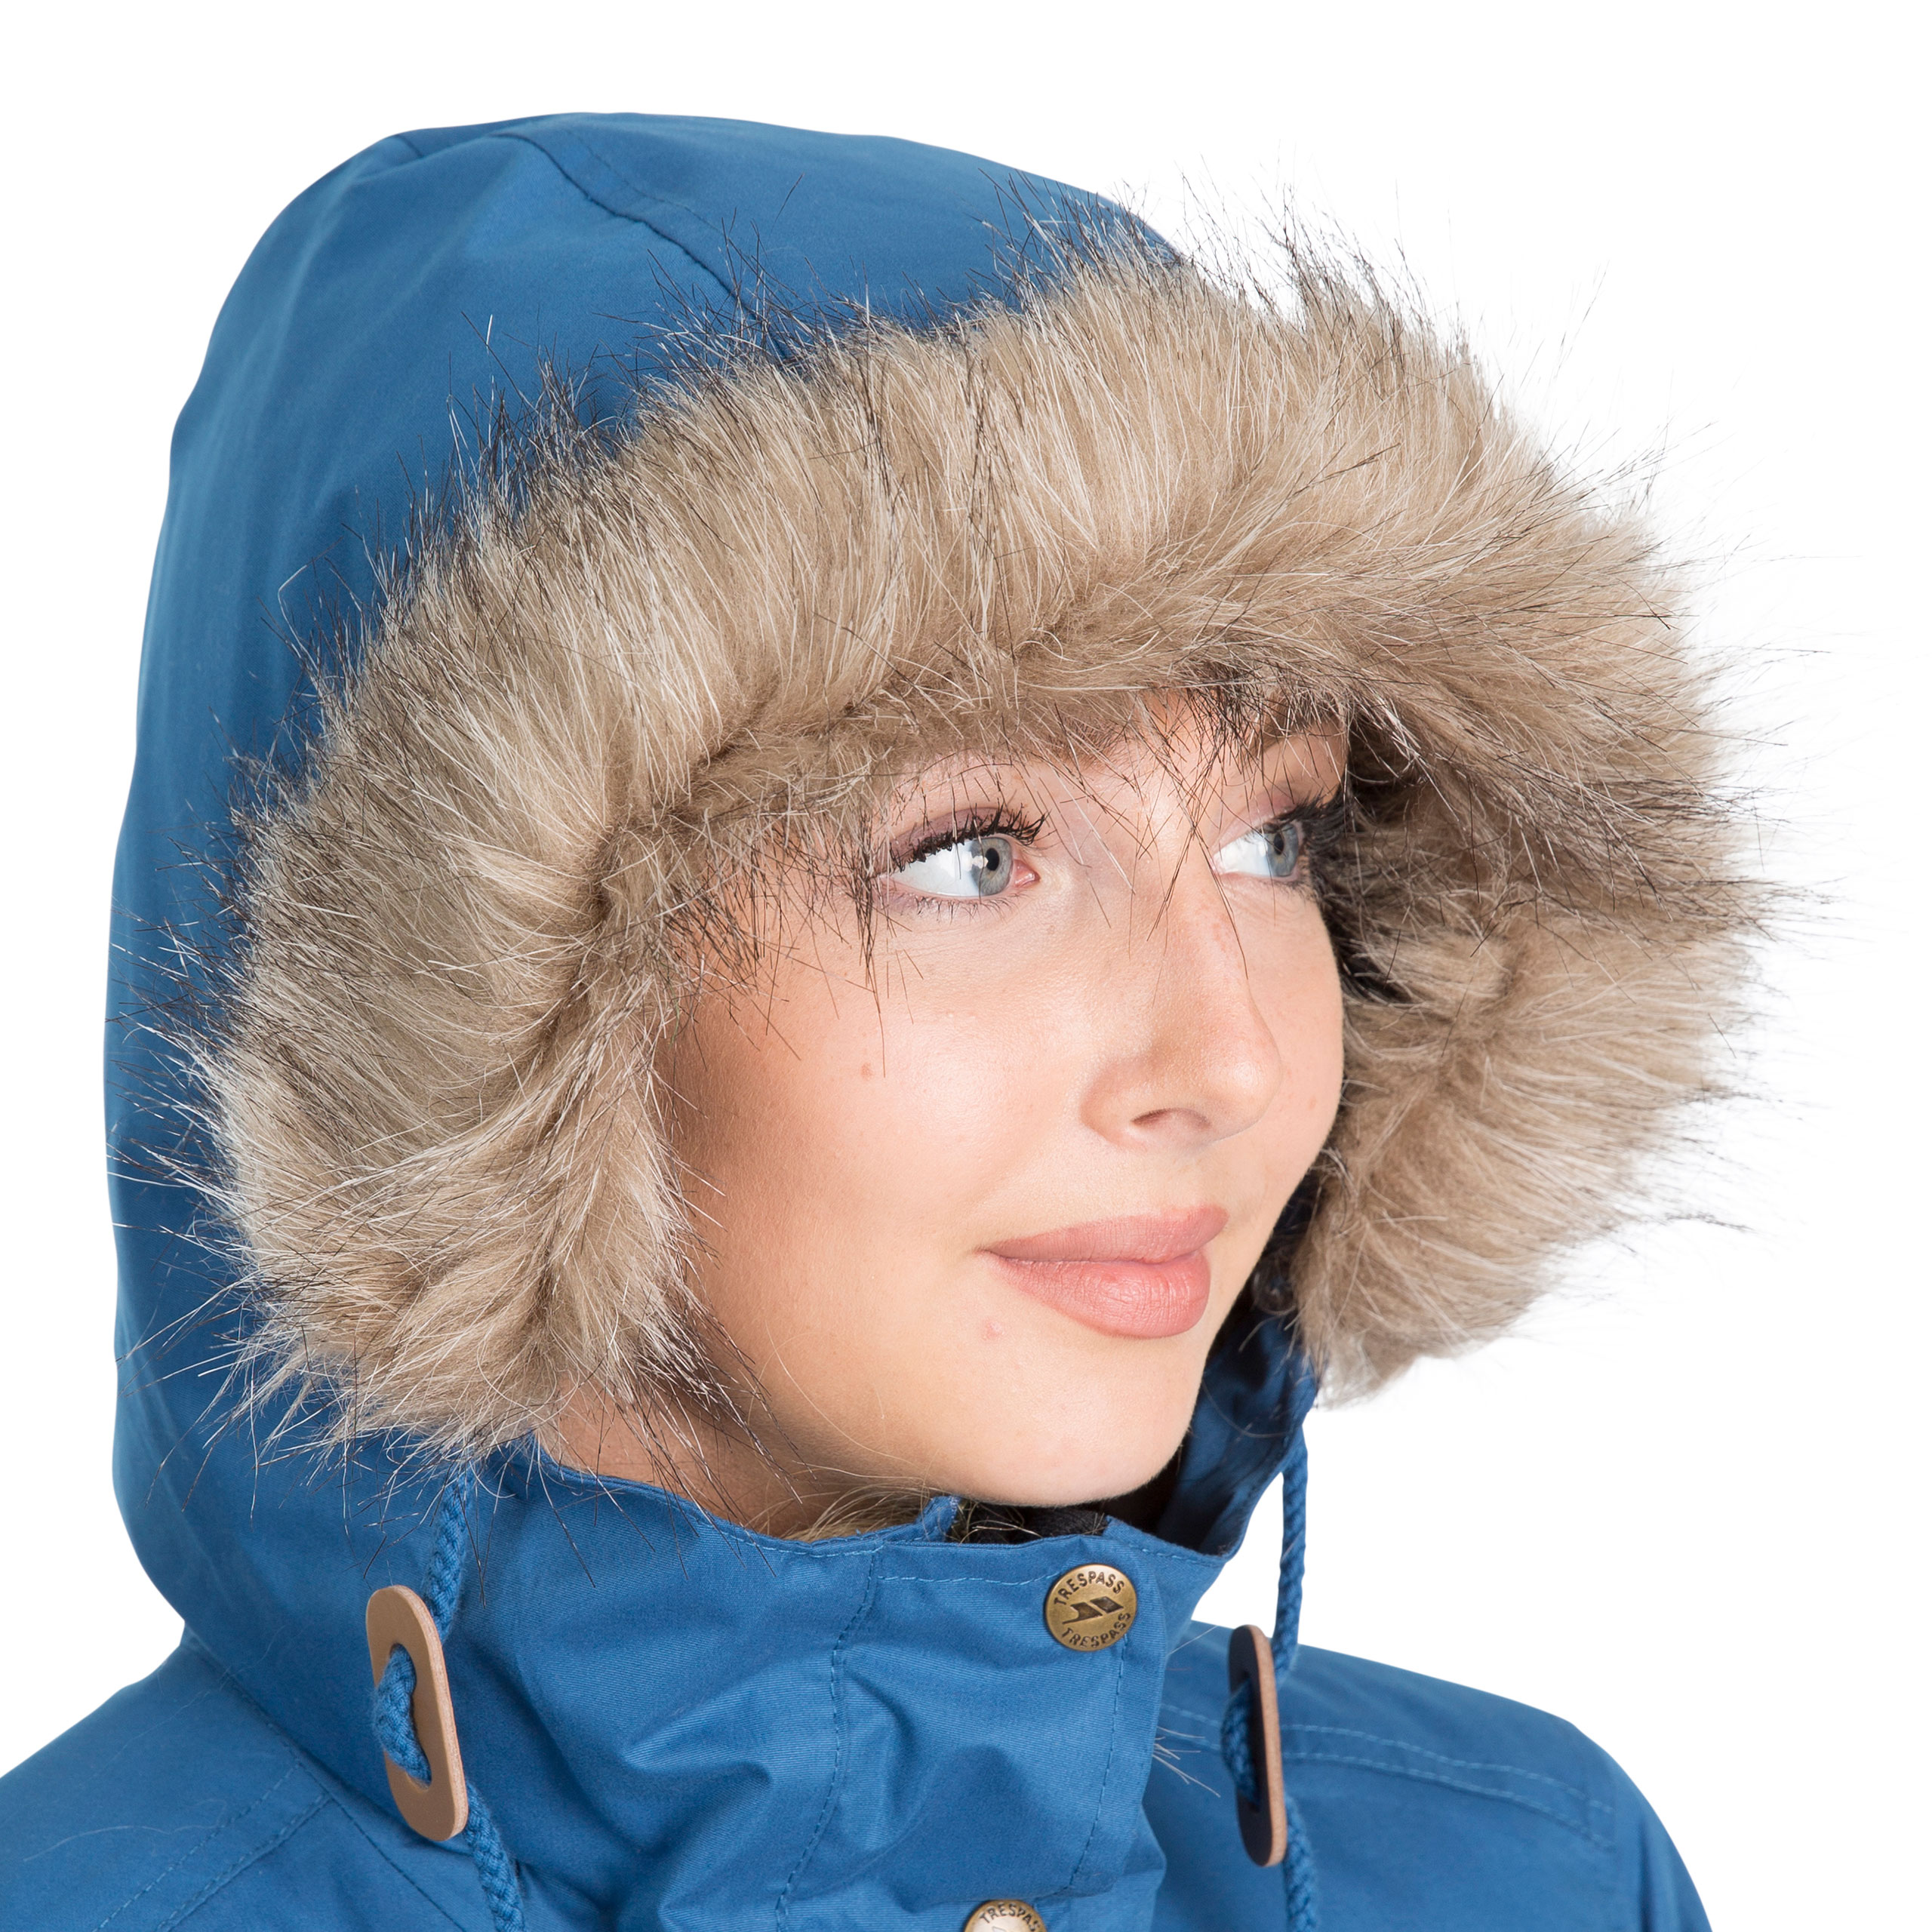 Trespass-Womens-Parka-Jacket-Waterproof-Hooded-Fur-Winter-Coat-XXS-XXXL thumbnail 19